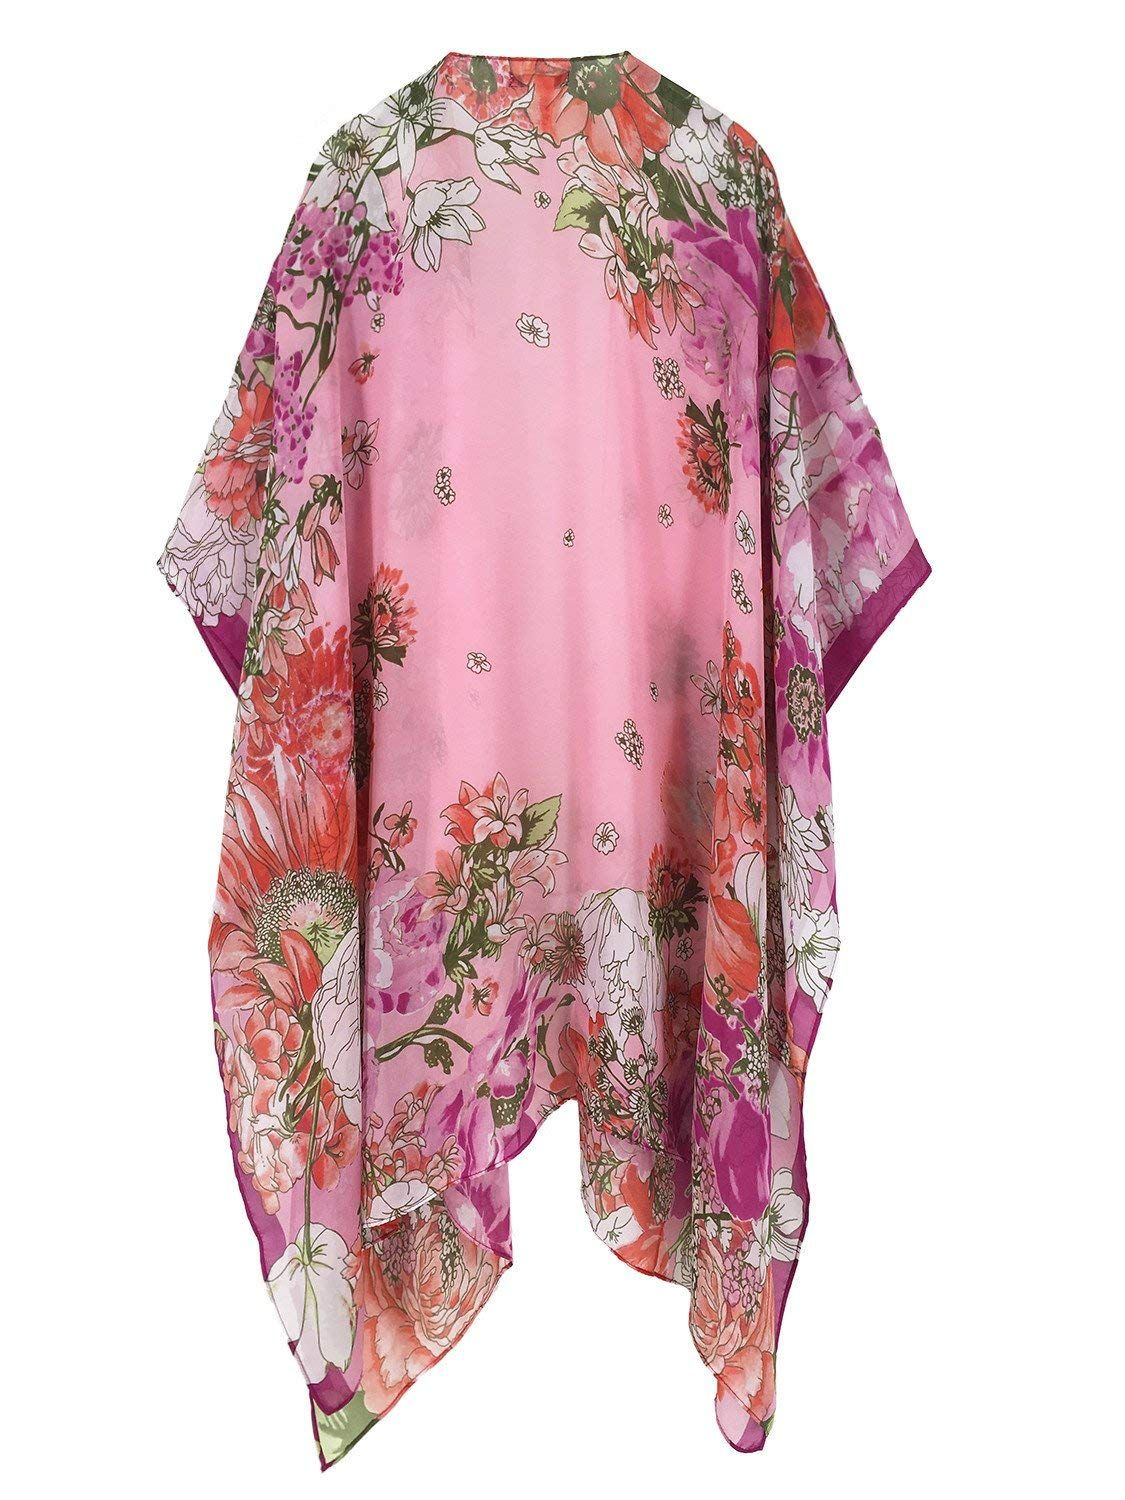 aa0babd243e76 Moss Rose Women's Beach Cover up Swimsuit Kimono Cardigan with Bohemian  Floral Print (Color27) at Amazon Women's Clothing store: